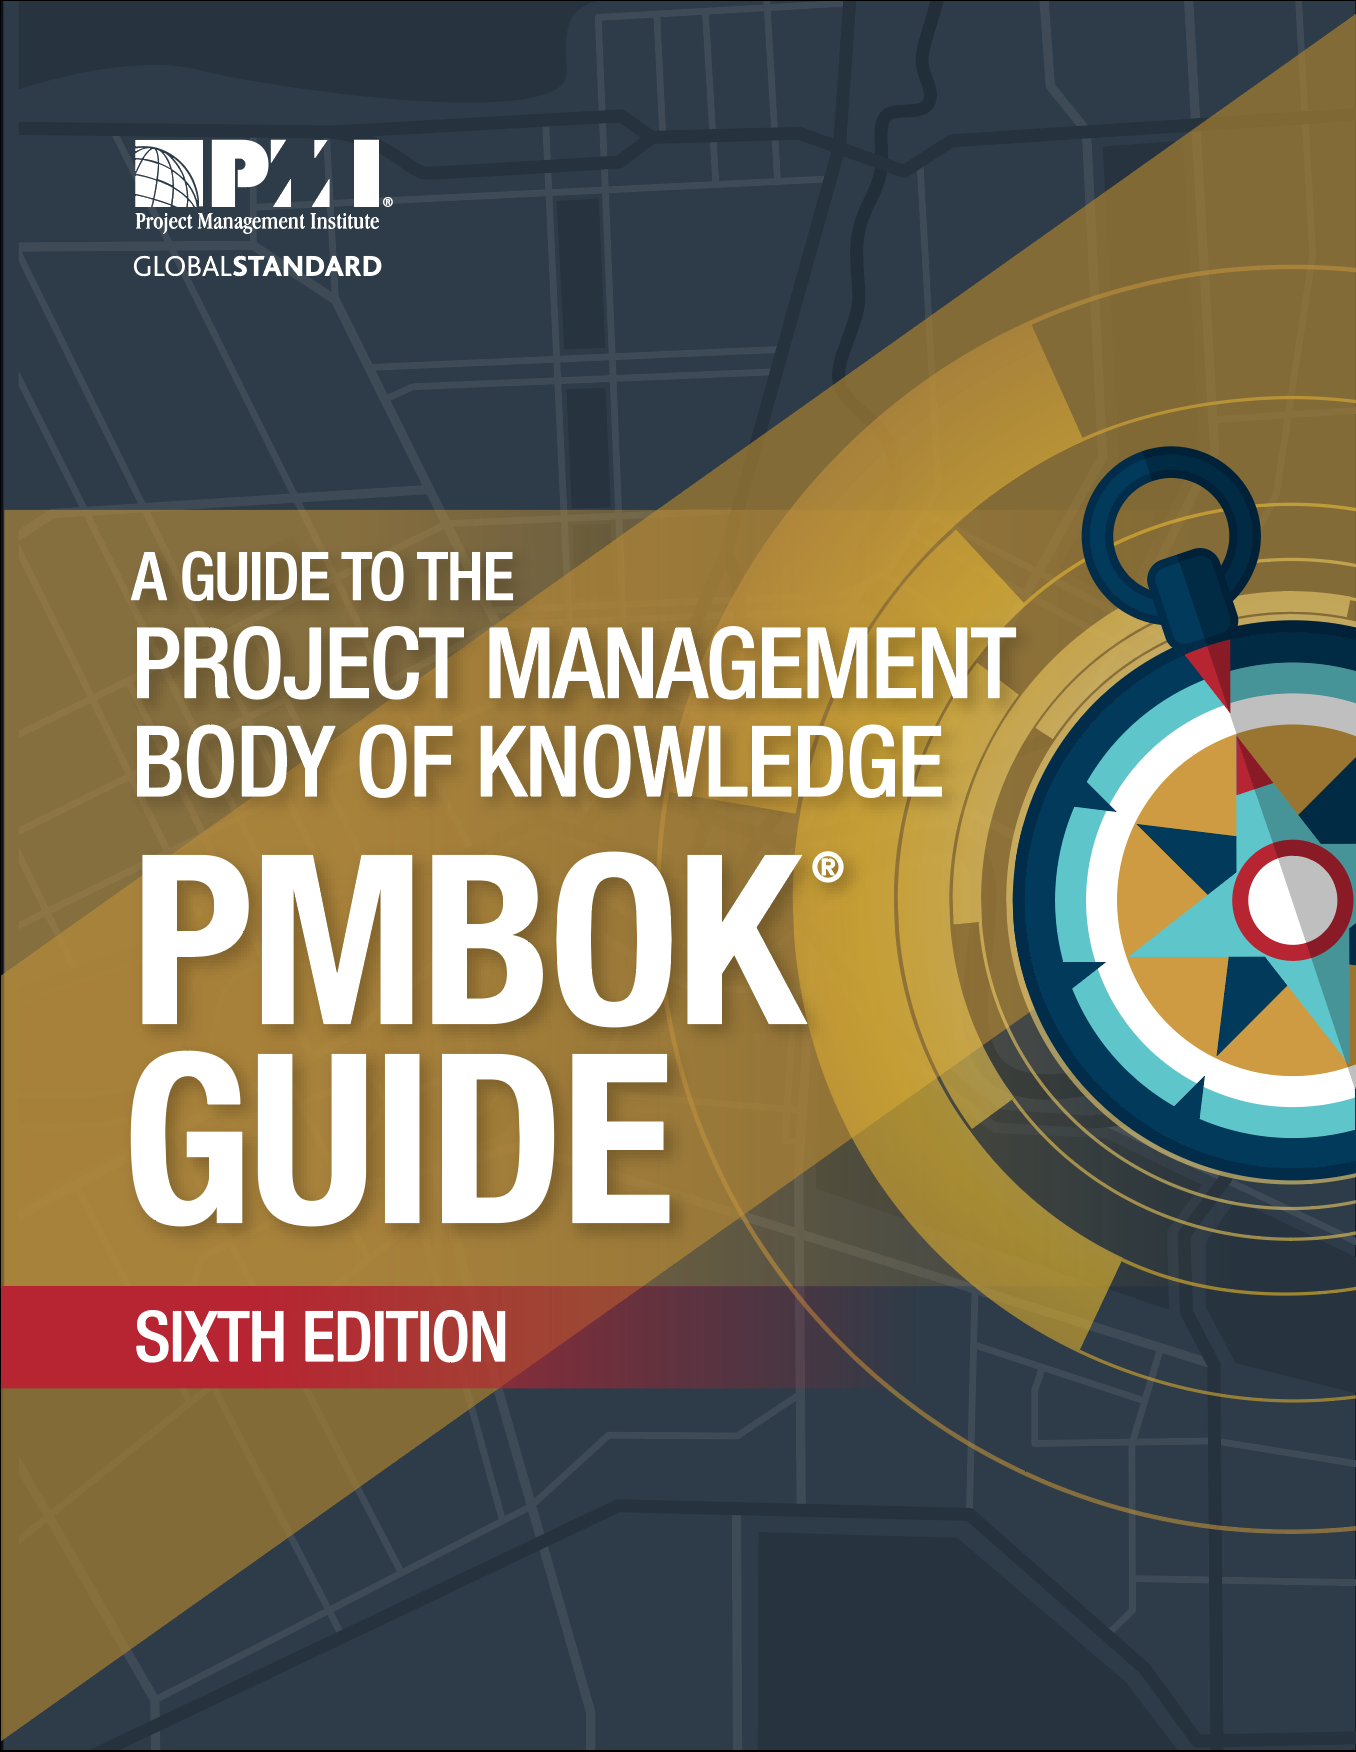 project guide 2018-6-24 handbook on project implementation  a practical guide on project implementation with an online tutorial and templates on project management,.